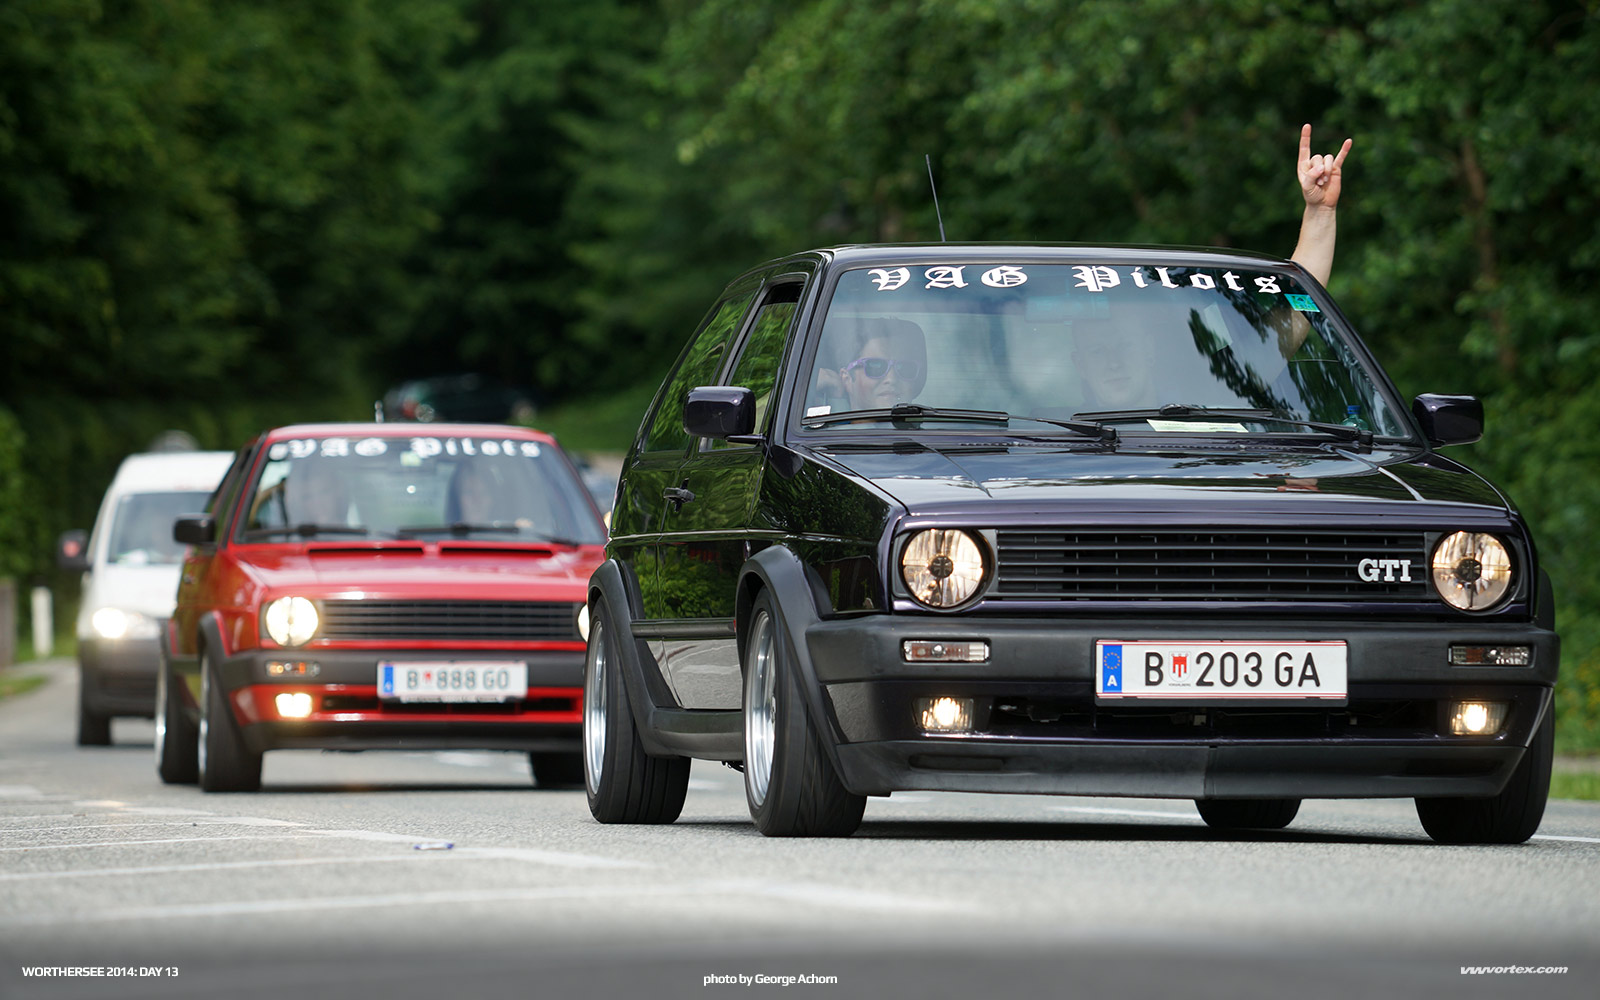 2014 Worthersee Day 14 VW296 960x480